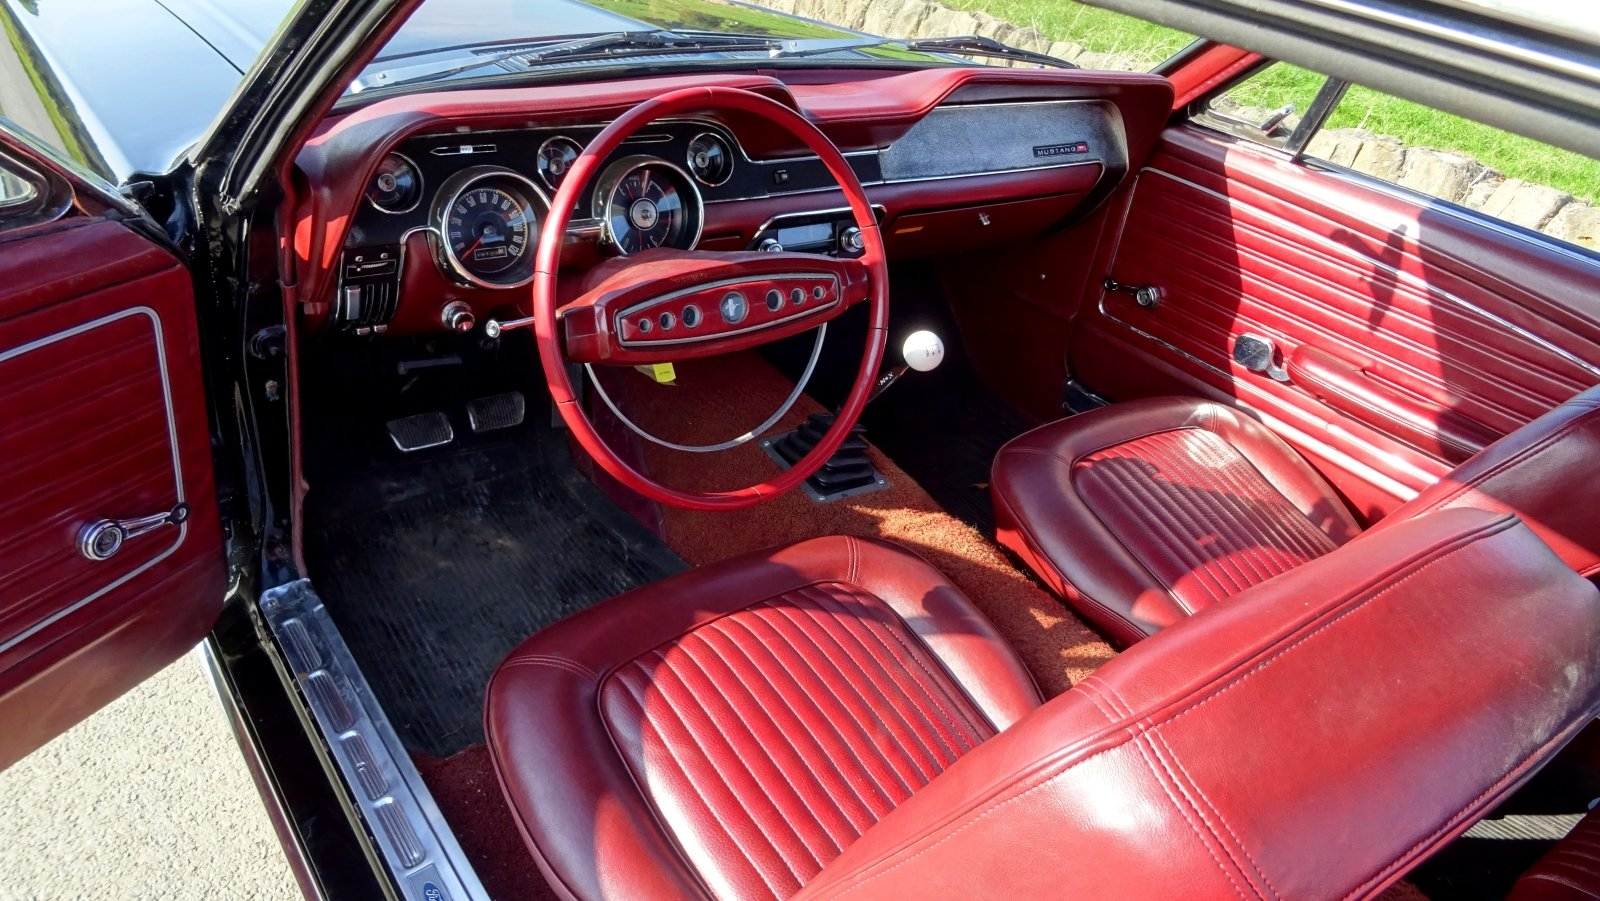 1968 AWESOME FORD MUSTANG AMERICAN V8 CLASSIC MUSCLE CAR For Sale (picture 10 of 12)